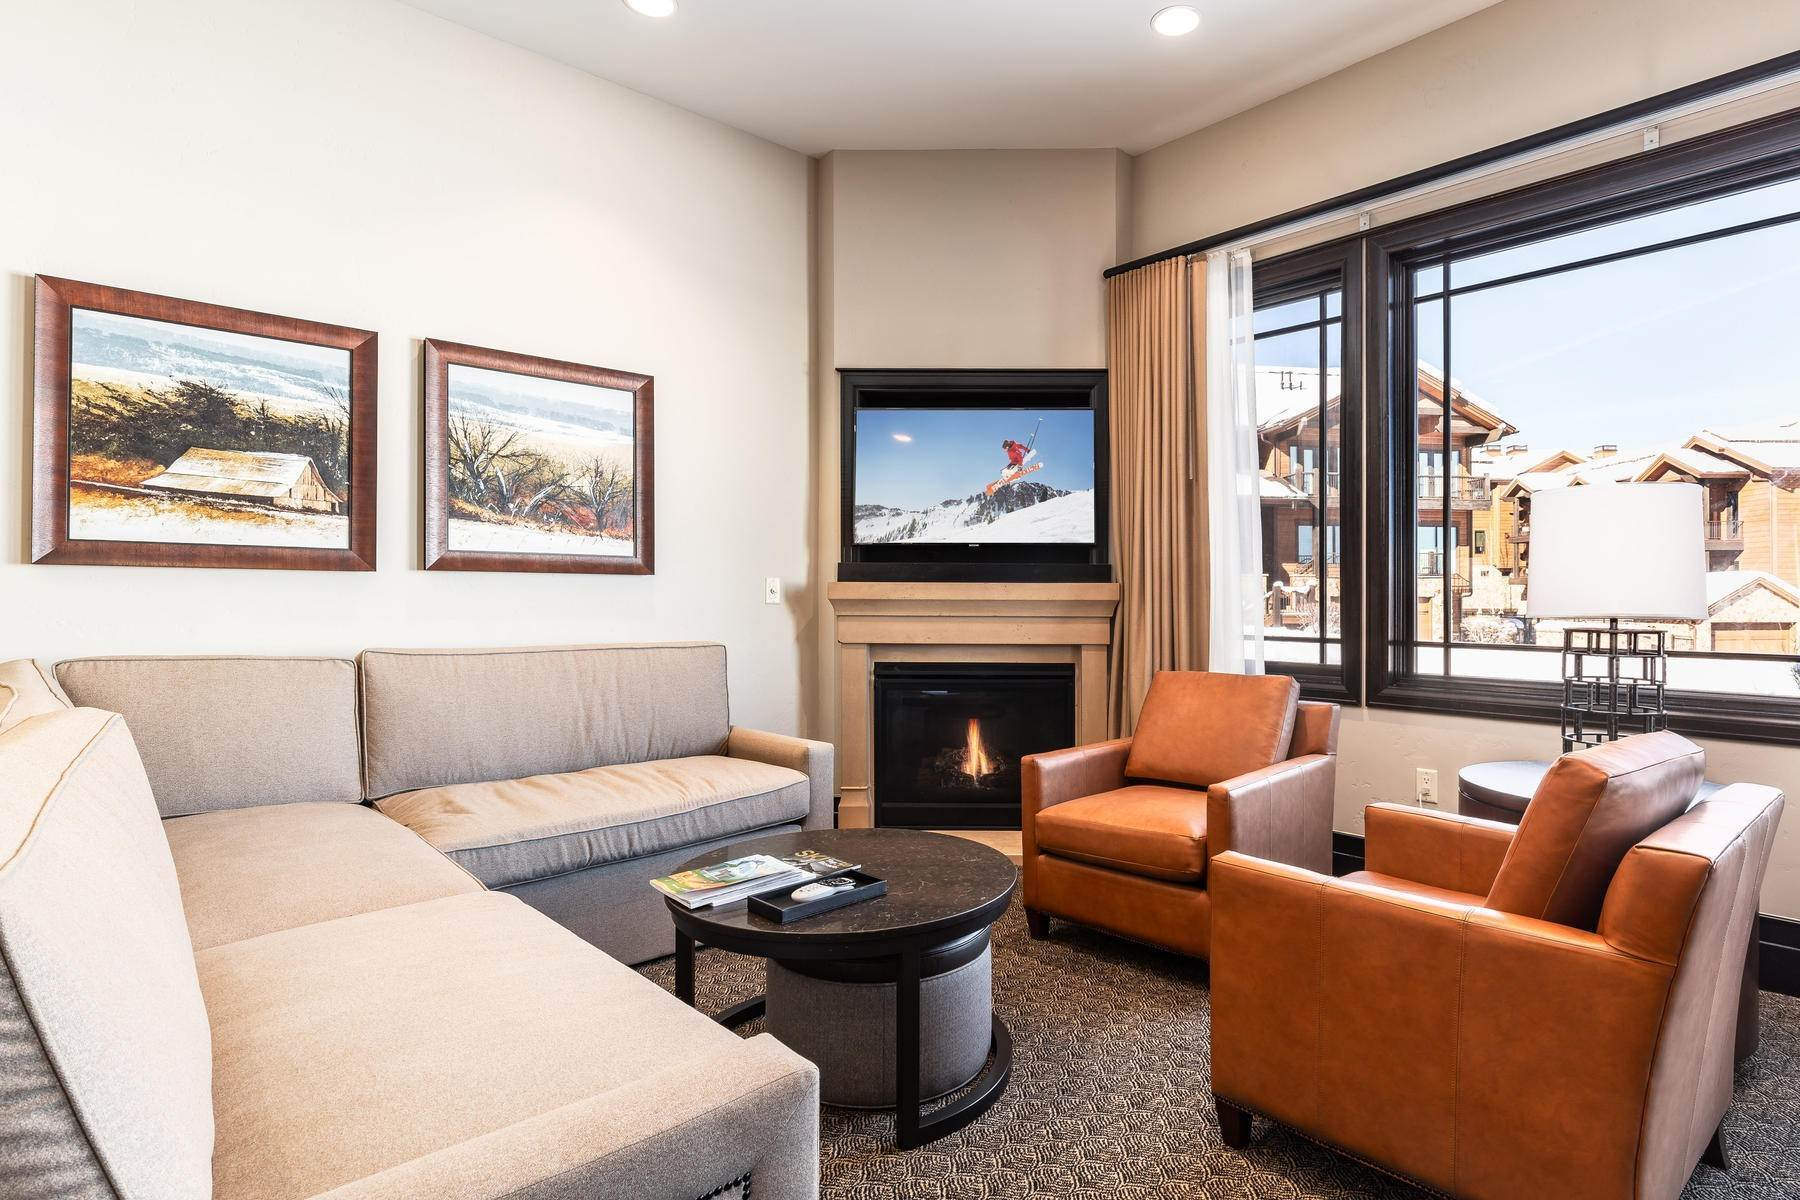 5. Condominiums at 2100 W Frostwood Boulevard #5172 Park City, Utah 84098 United States